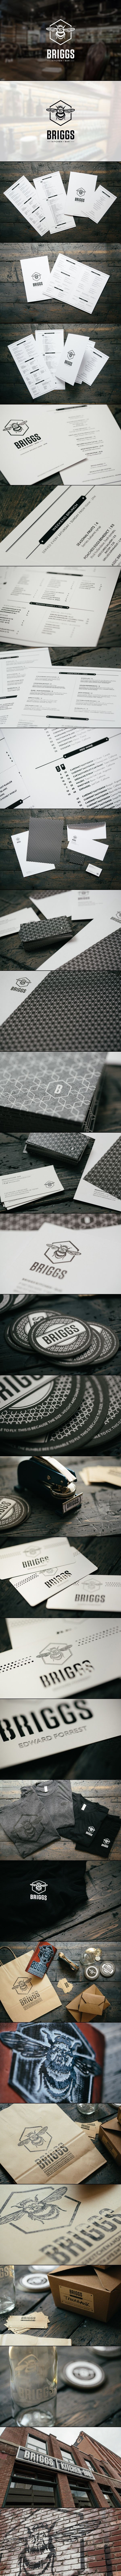 Let's meet at Briggs Kitchen bar for lunch | #stationary #corporate #design #corporatedesign #identity #branding #marketing < repinned by www.BlickeDeeler.de | Take a look at www.LogoGestaltung-Hamburg.de